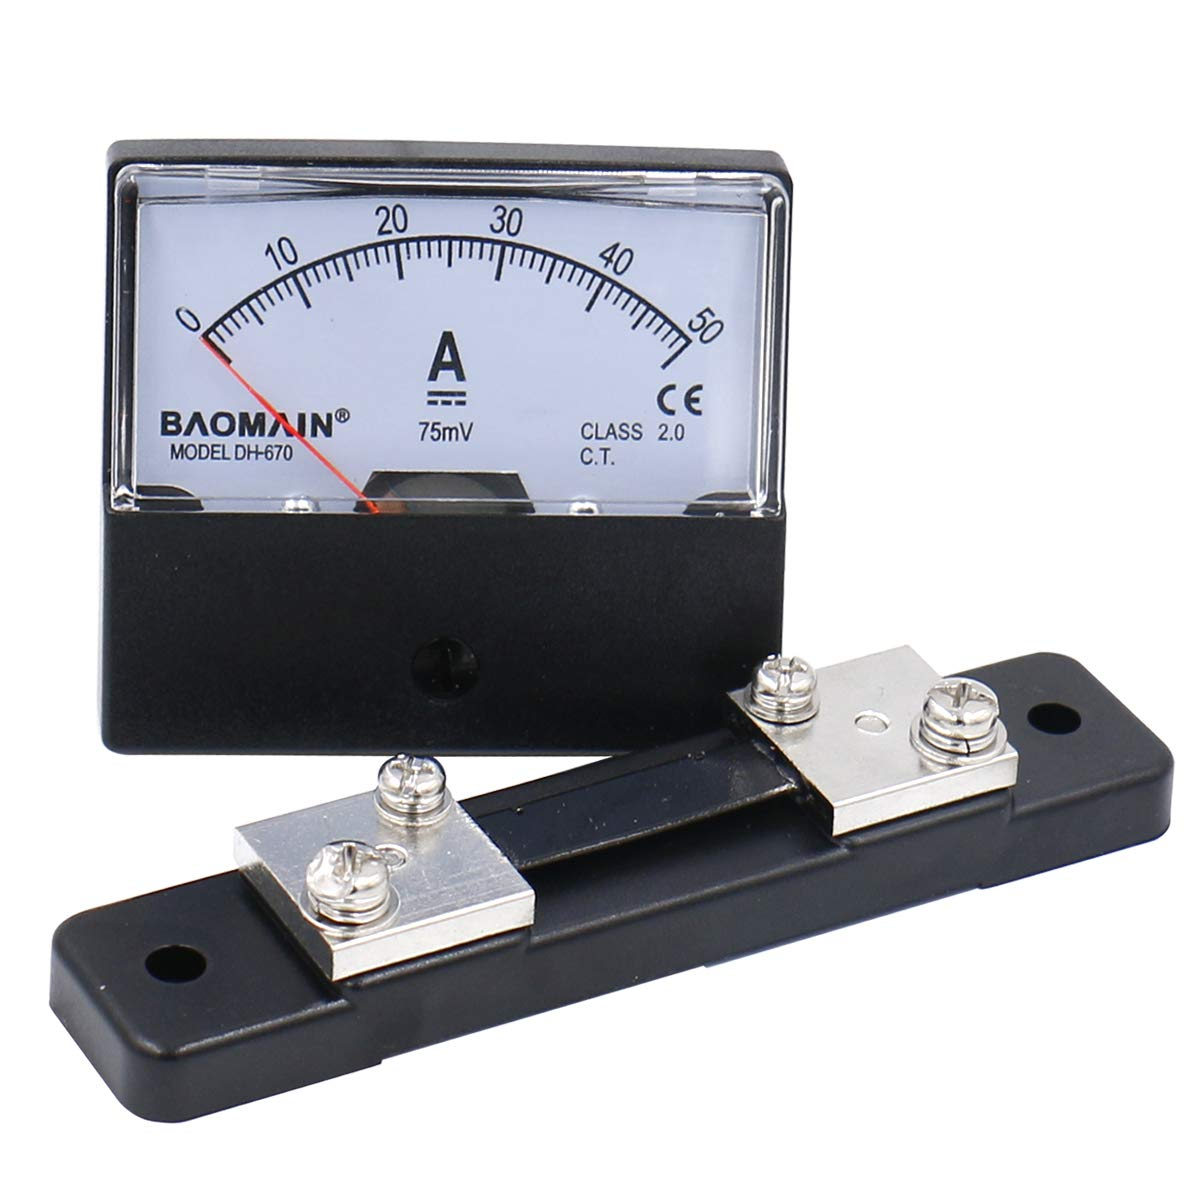 Baomain DH-670 Max 90% Regular discount OFF DC 0-50A Analog Amp Current Meter Panel w Ammeter